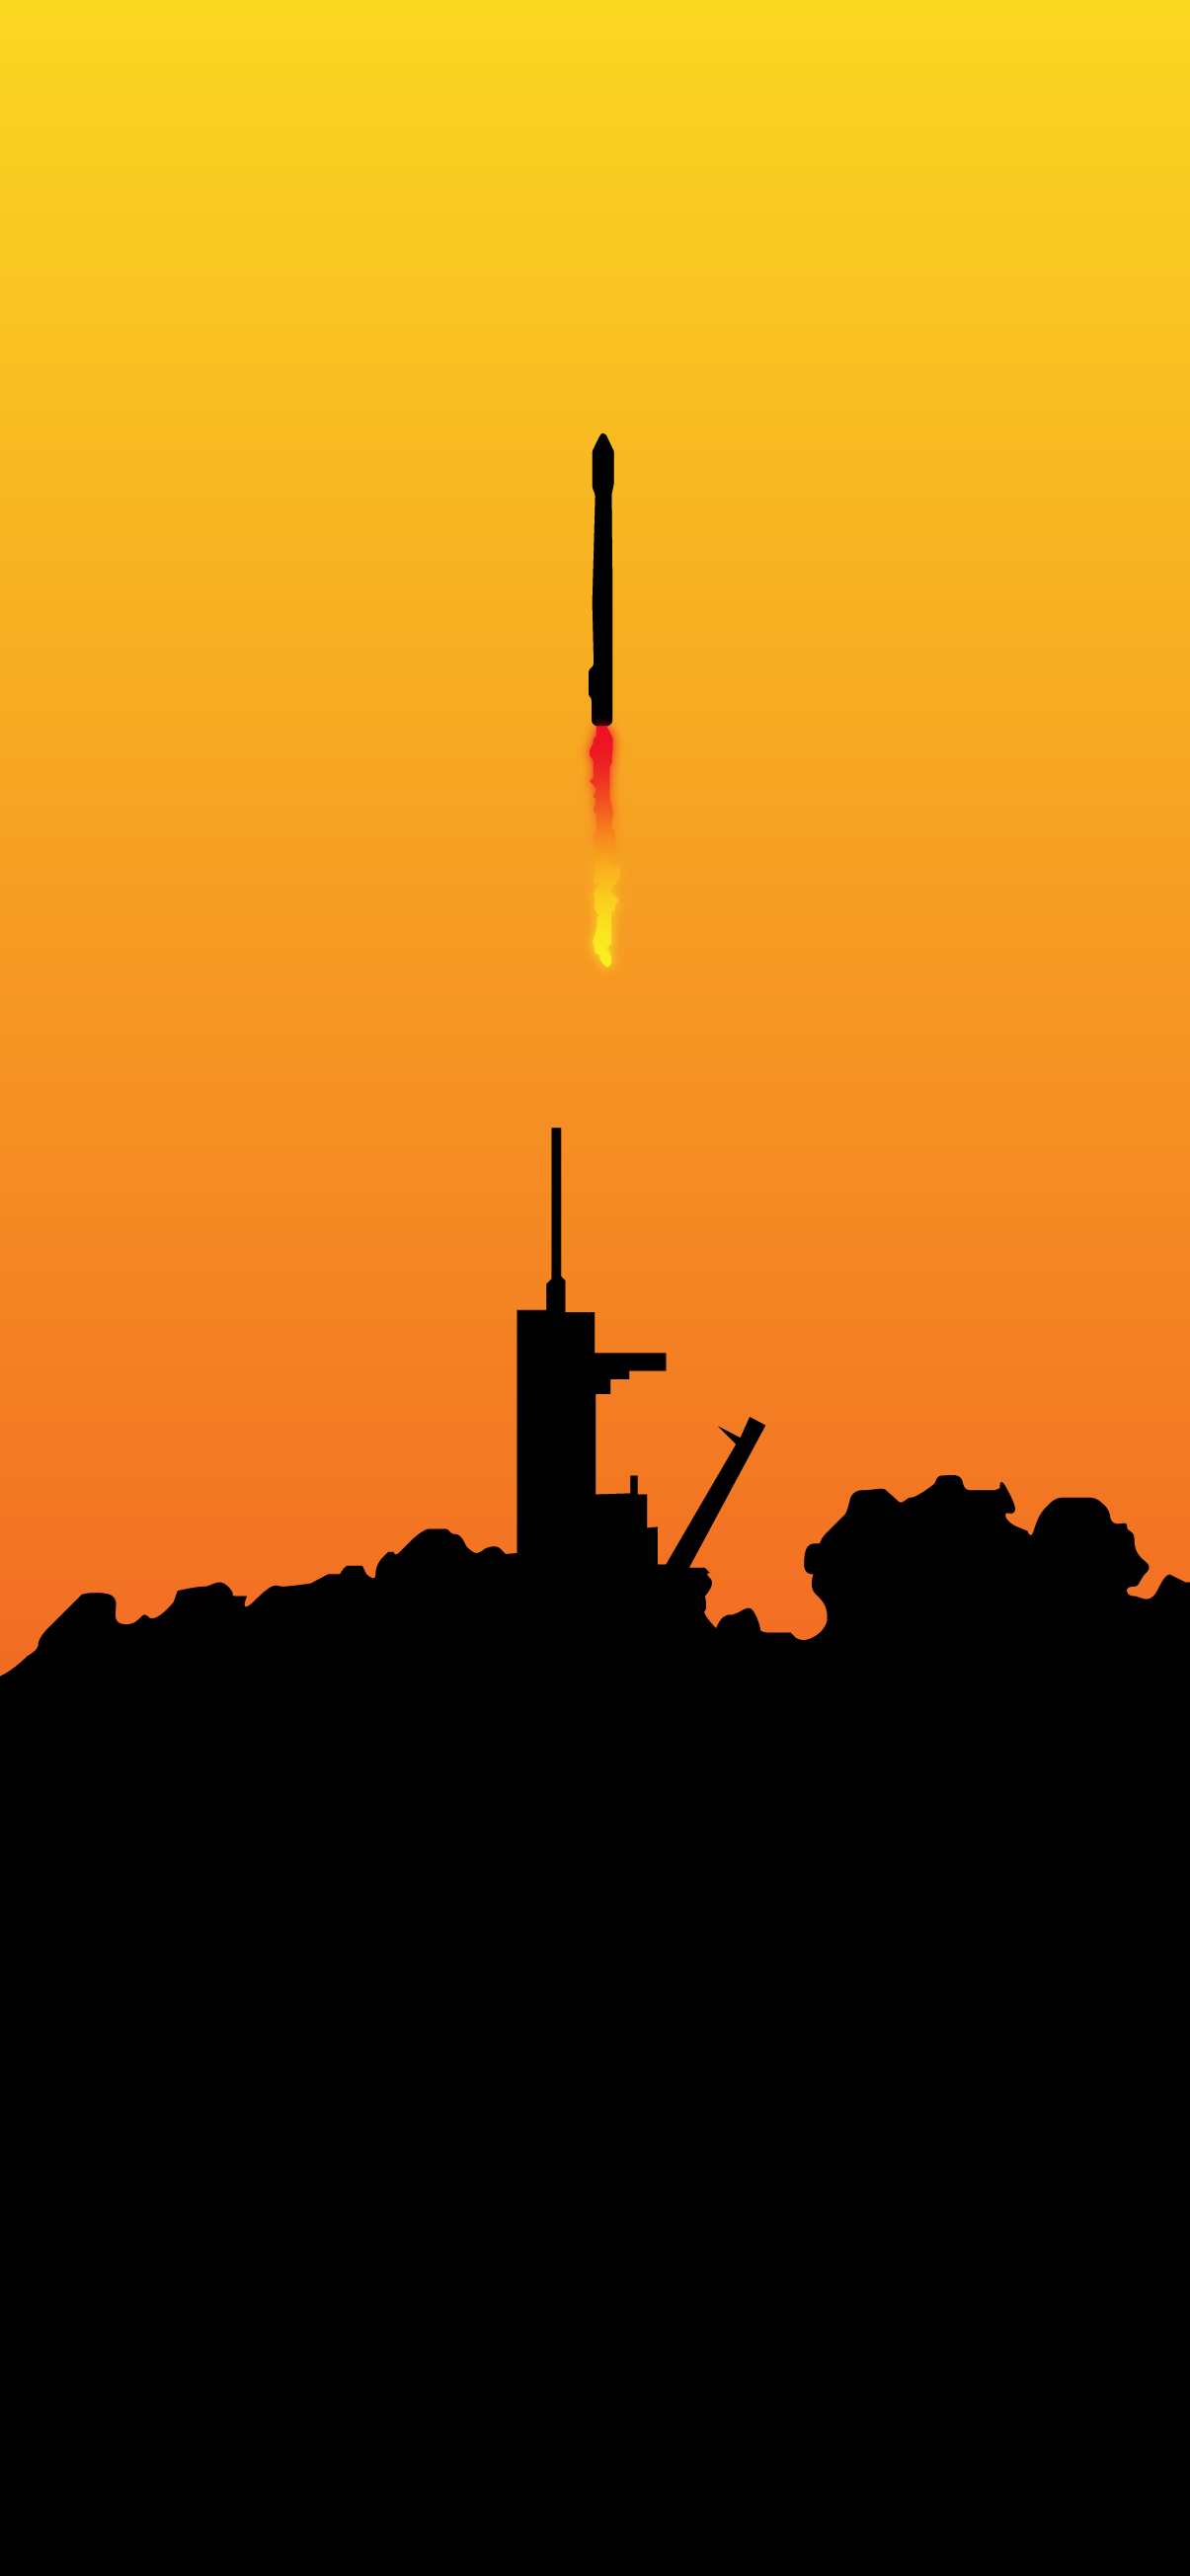 SPACEX FALCON 9 LAUNCH MINIMALISTIC WALLPAPER IPHONE 4K